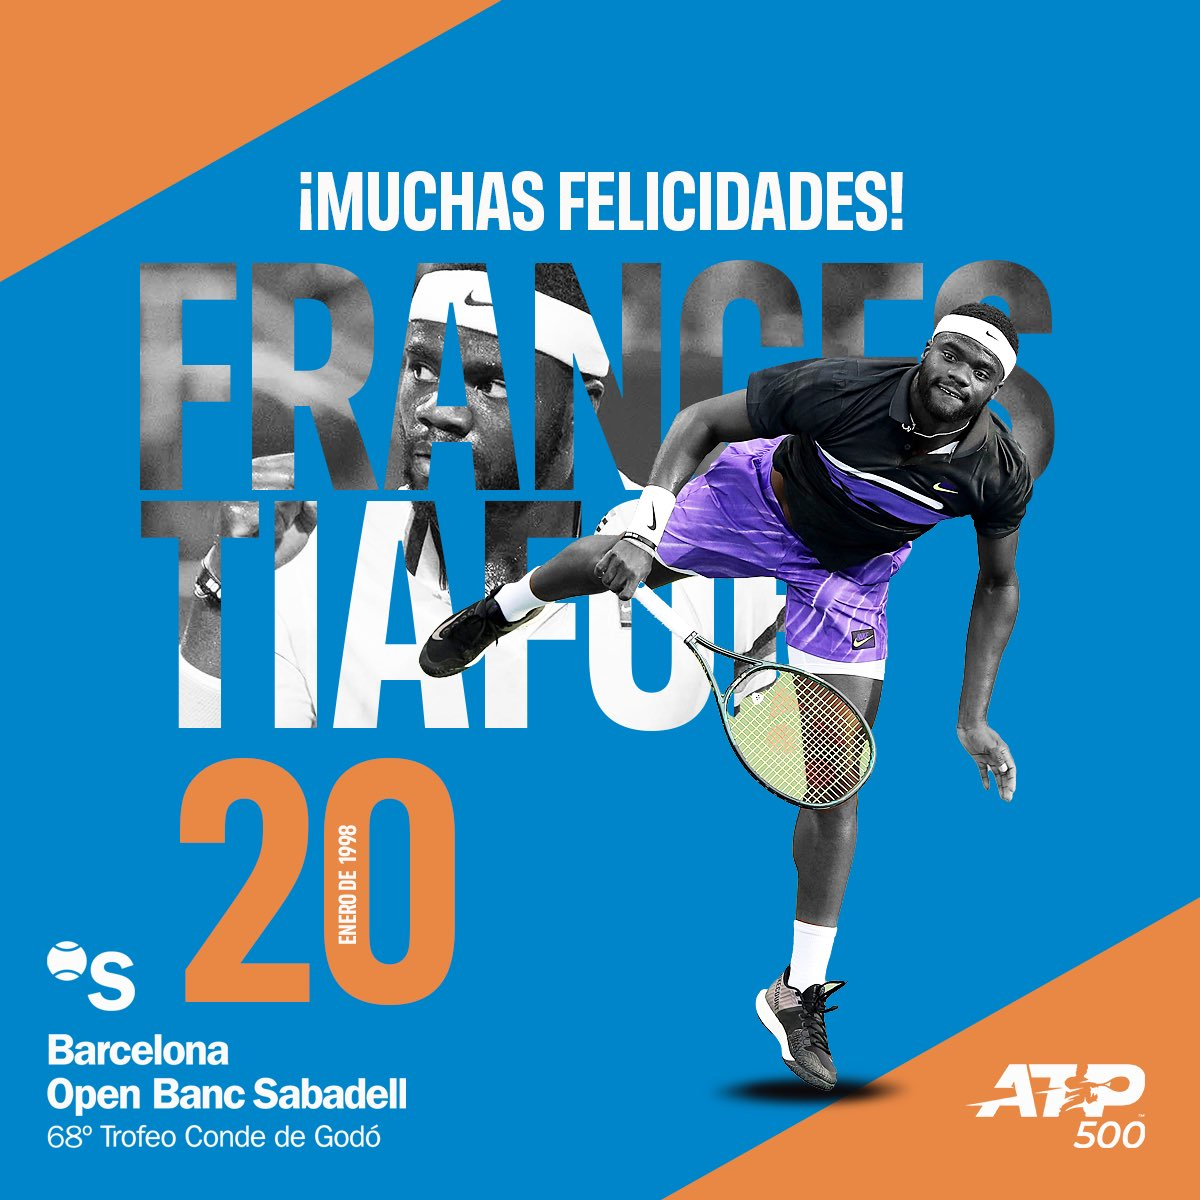 🎊¡MUCHAS FELICIDADES @FTiafoe ! 🎉  🥰 Hope you have the best day  👇🏻Write your birthday wishes  💬  #Atp #AtpTour #happybirthday